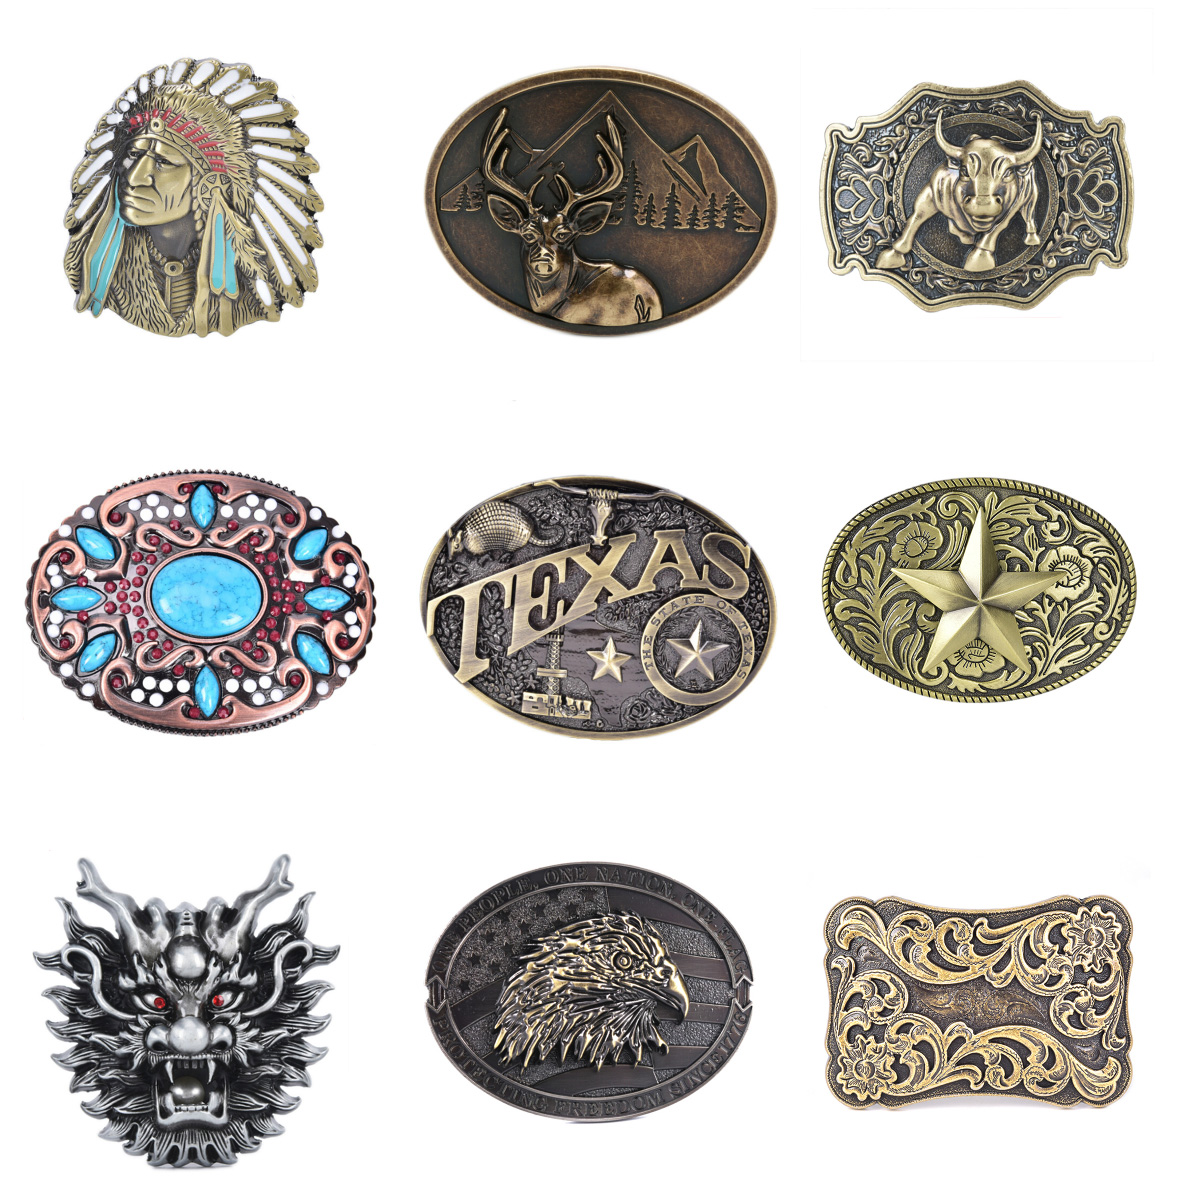 Mens' Belt Buckle WesBuck Brand Belt Buckle For Men Carpenter Mechanic Cowboy And Cowgirl Metal Tool Western Buckles Marvel